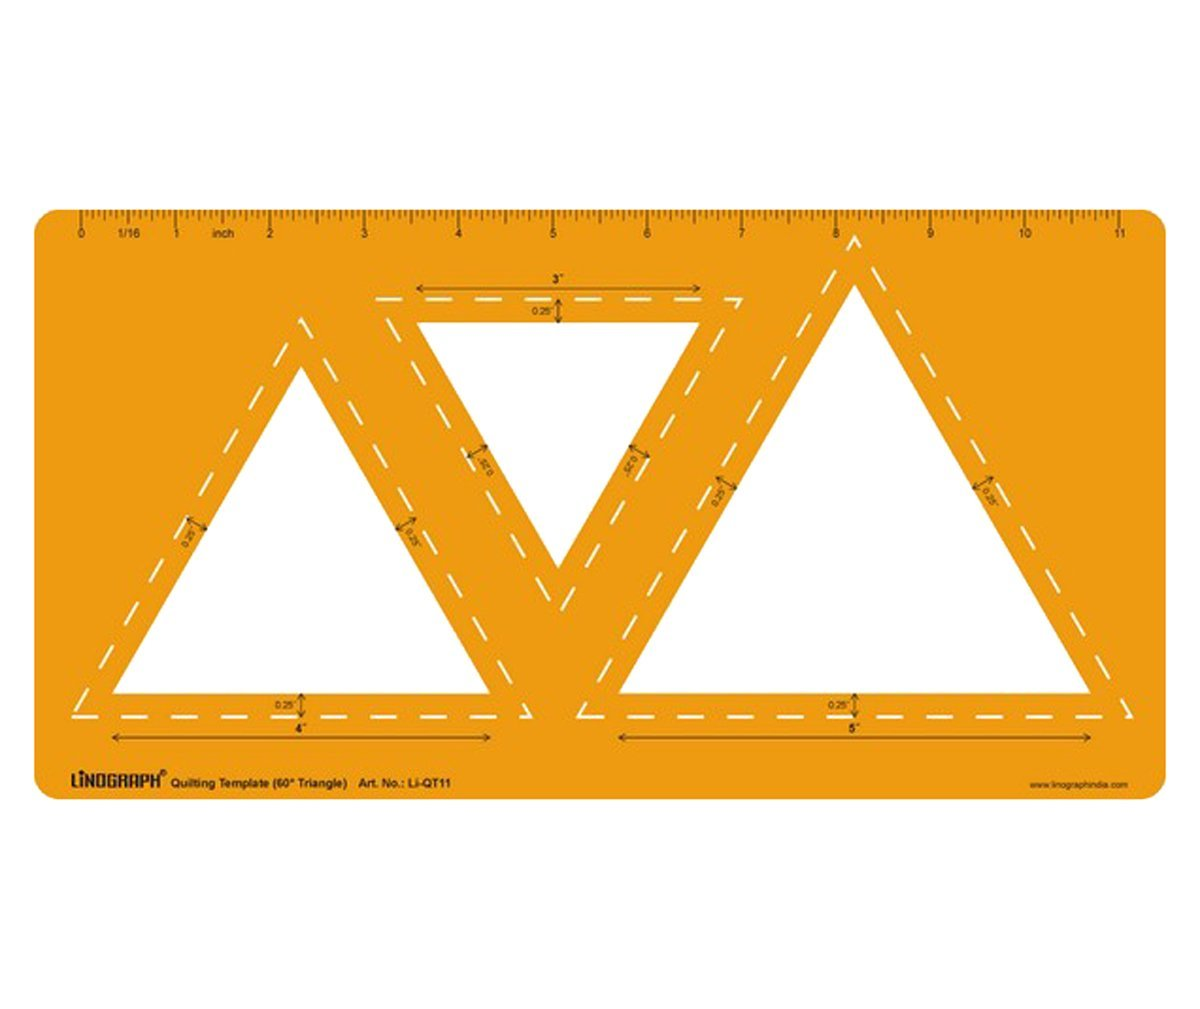 60° Triangle Quilting Template Ruler Patchwork Quilt Stencil LINOGRAPH